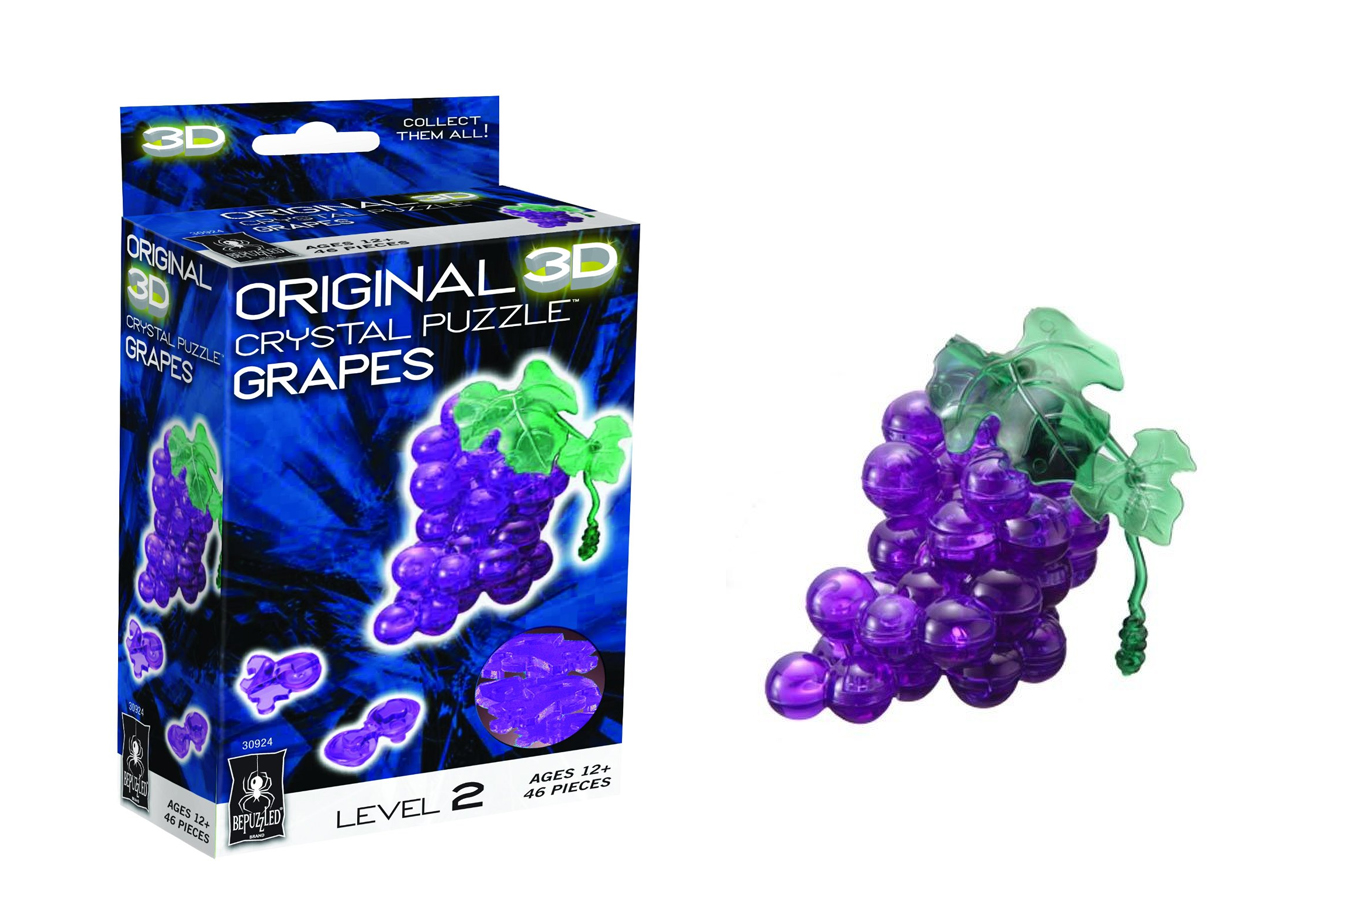 fathers day gift ideas 2016 3D Crystal Puzzle - Grapes